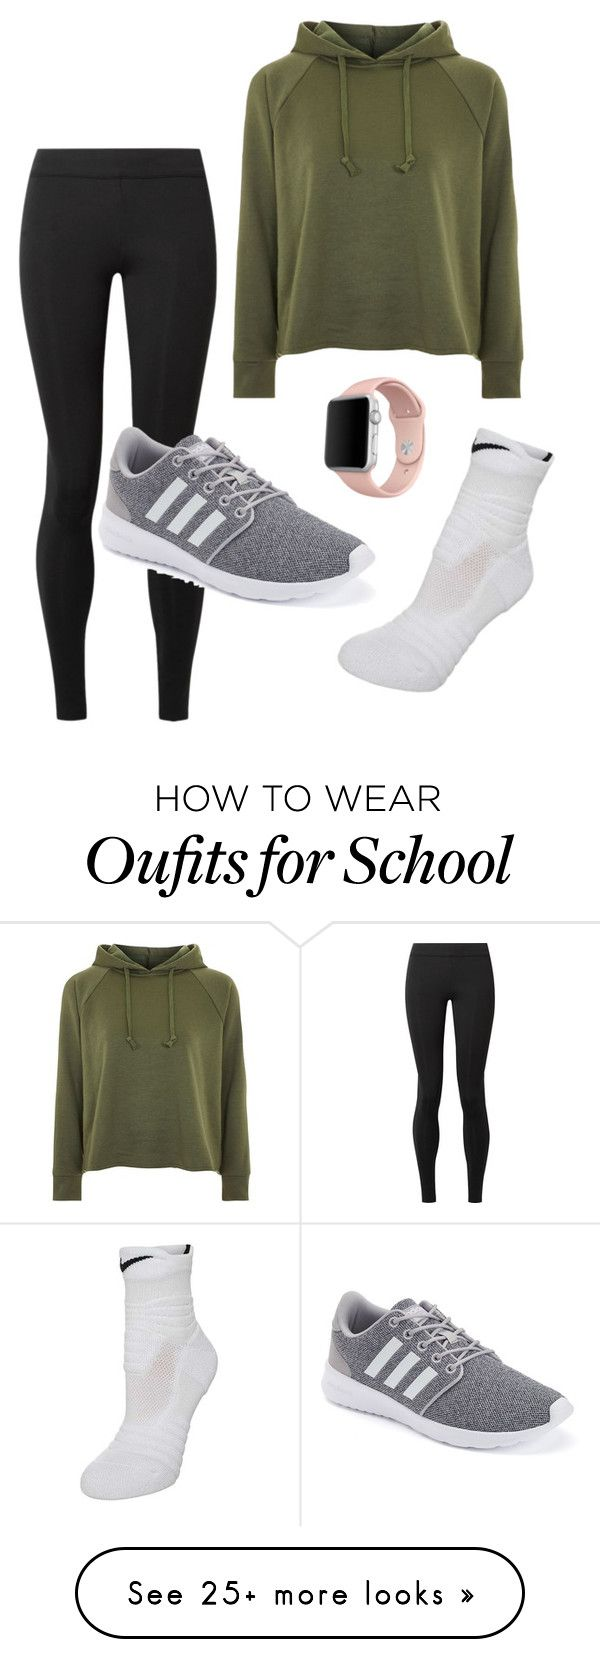 """School"" by woodscb on Polyvore featuring The Row, adidas, NIKE, Topshop and Apple"